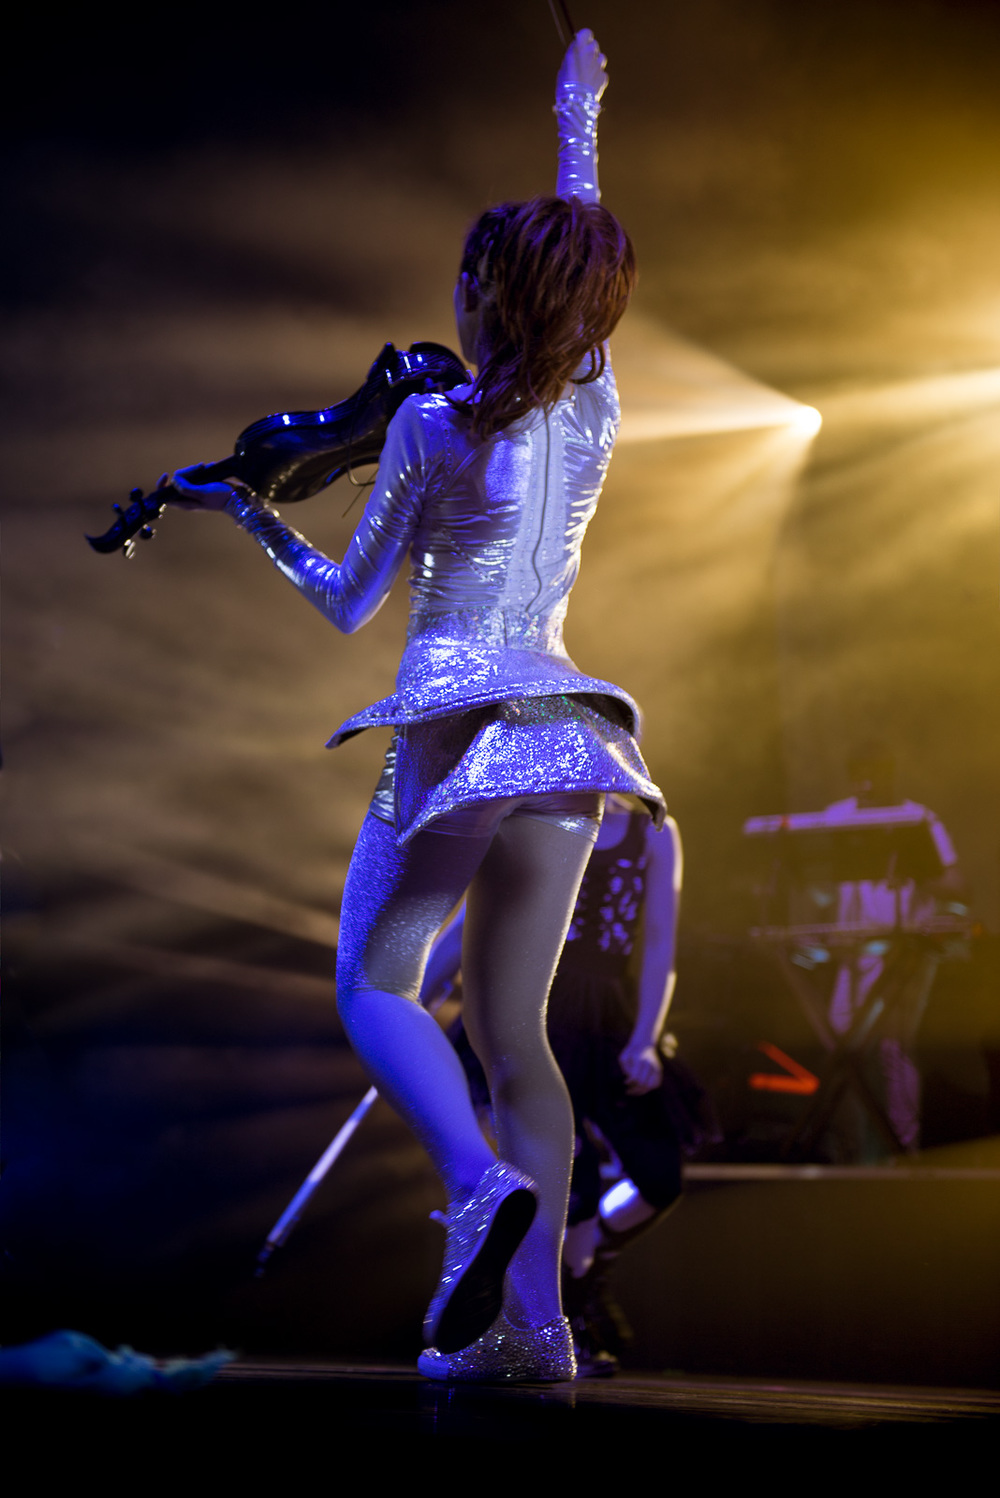 Nguyen_Timothy_Lindsey_Stirling_SpokaneWA-26.jpg